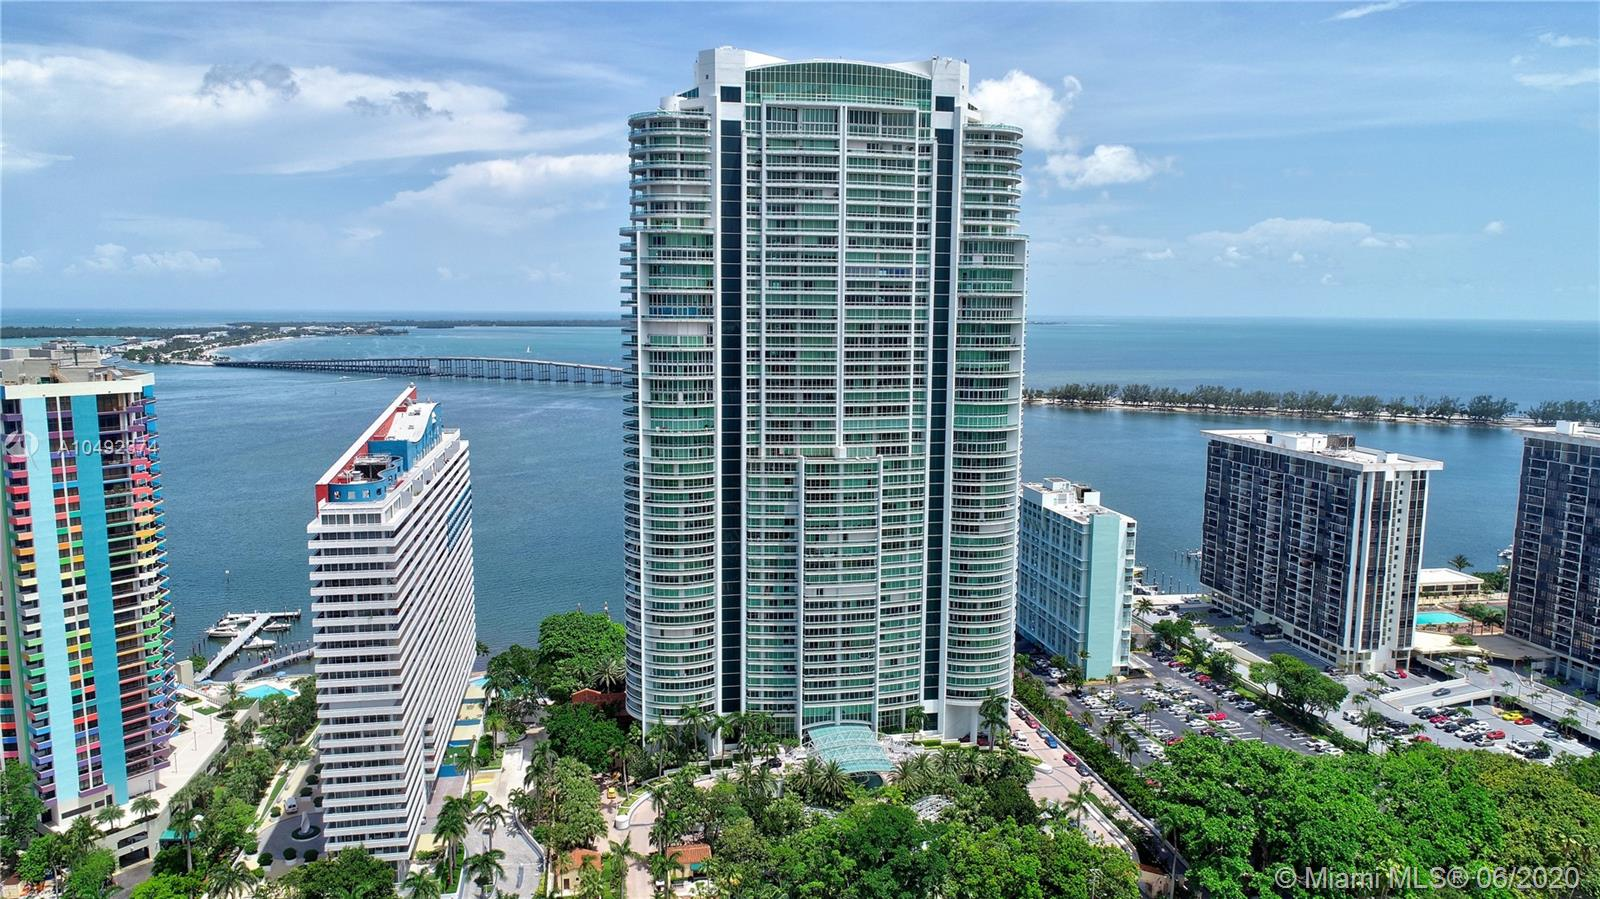 One of the best building in Brickell, the elegant and unique Santa Maria. Breathtaking panoramic views of the Ocean, Bay and mesmerizing Skyline from this gorgeous unit that has been completely renovated with luxurious finishes! Spacious 4 bedrooms 5.5 bathrooms featuring Veneta Kitchen with top of the line appliances, customs lavish closets, shades, doors, walls, wood and marble floors. Master bedroom with opulent in suite bathroom. Flow trough unit w/ tons of natural light, private foyer and elevator. Expansive terraces with stunning unobstructed views of the Downtown Miami skyline, Biscayne Bay views. Santa Maria offers state of the art amenities, world class gym with never-ending views, heated pool, lighted tennis court & racquet ball court, marina access, privacy, location & elegance